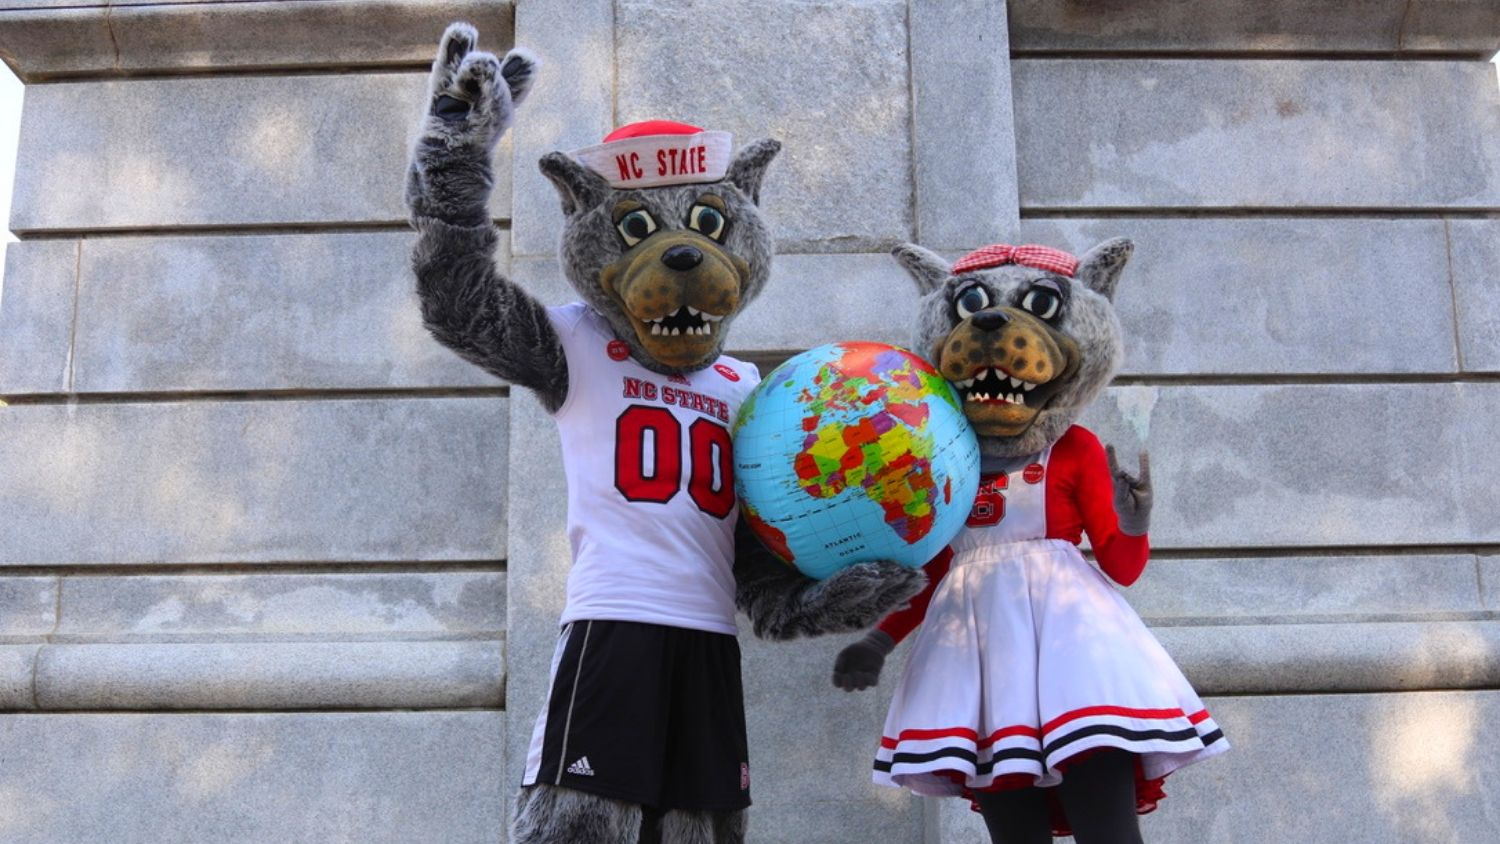 NCState's mascots, Mr and Mrs. Wuf, are holding a globe in front of the belltower.